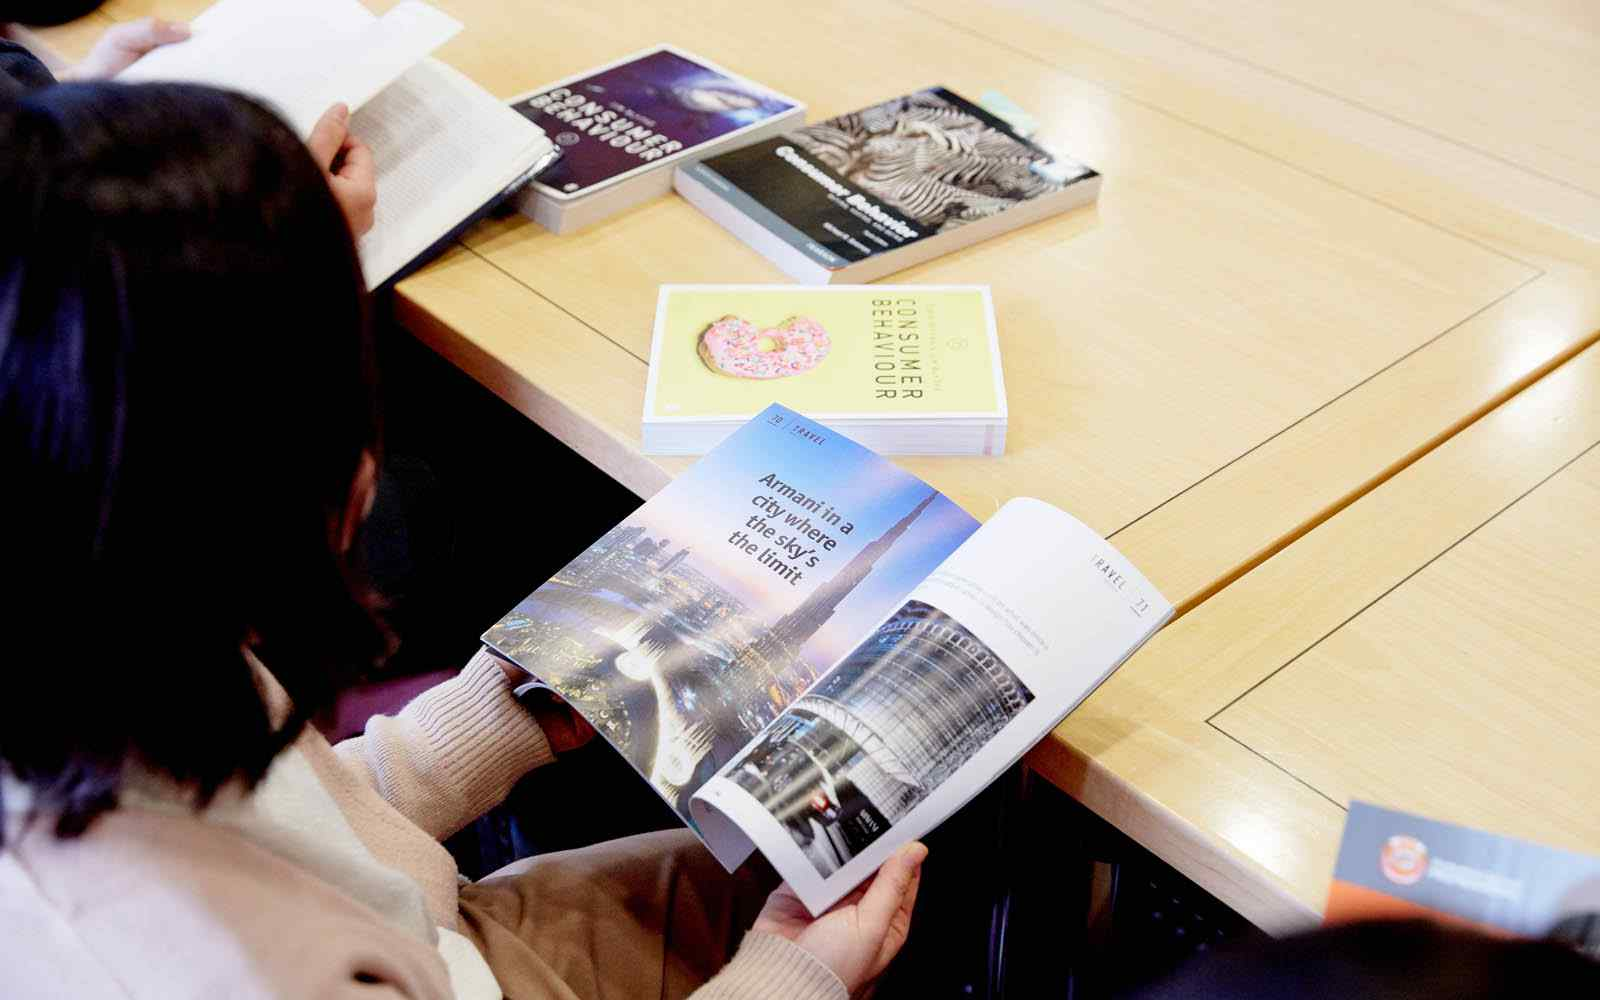 Student looking at travel advert in magazine